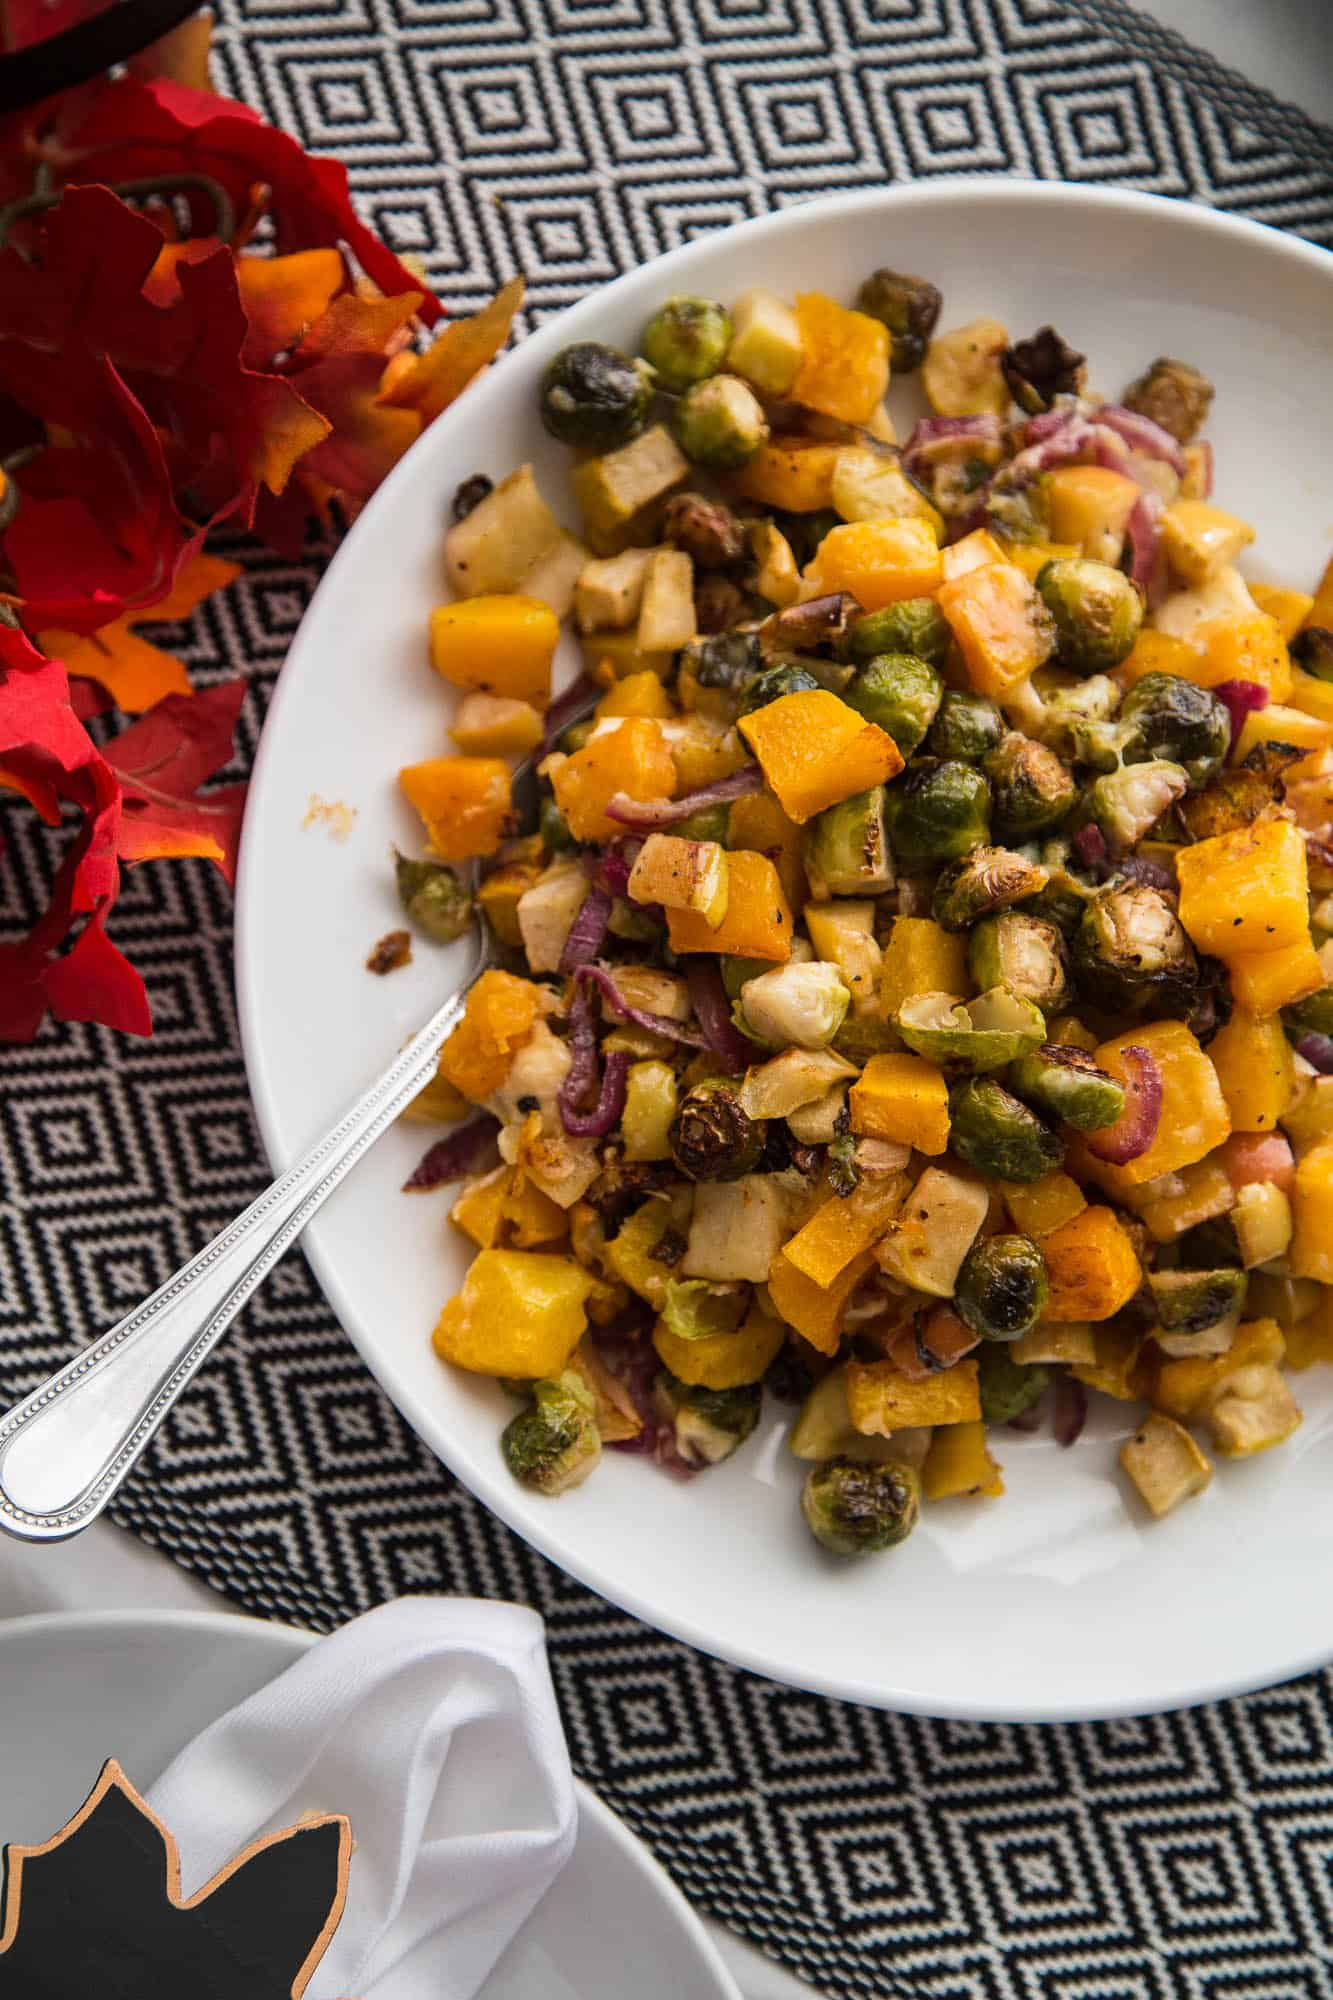 Roasted Fall Vegetables with Apples & Gouda | Thanksgiving side dishes | Paleo recipes | Whole30 recipes | Keto recipes | perrysplate.com